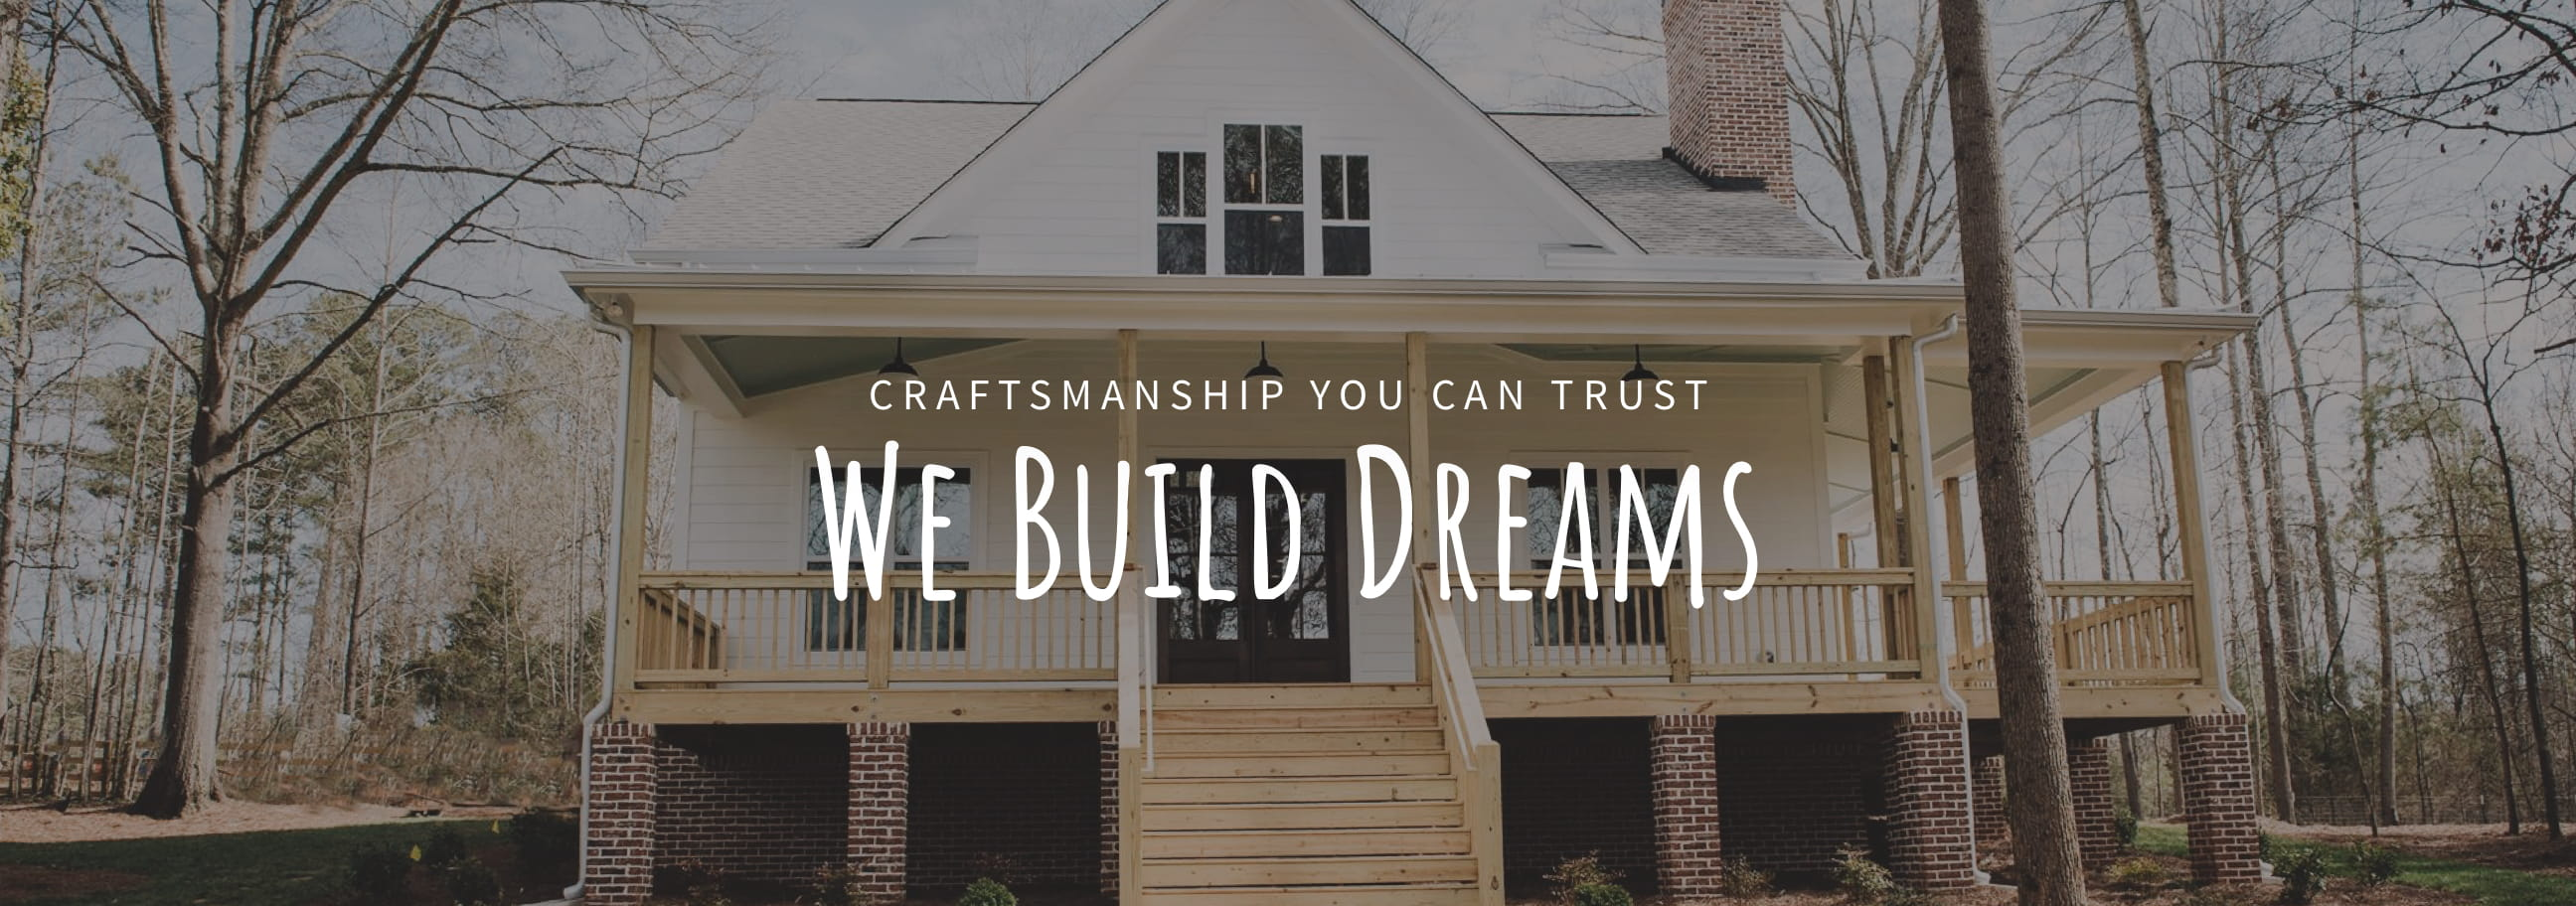 We Build Dreams — Craftsmanship You Can Trust